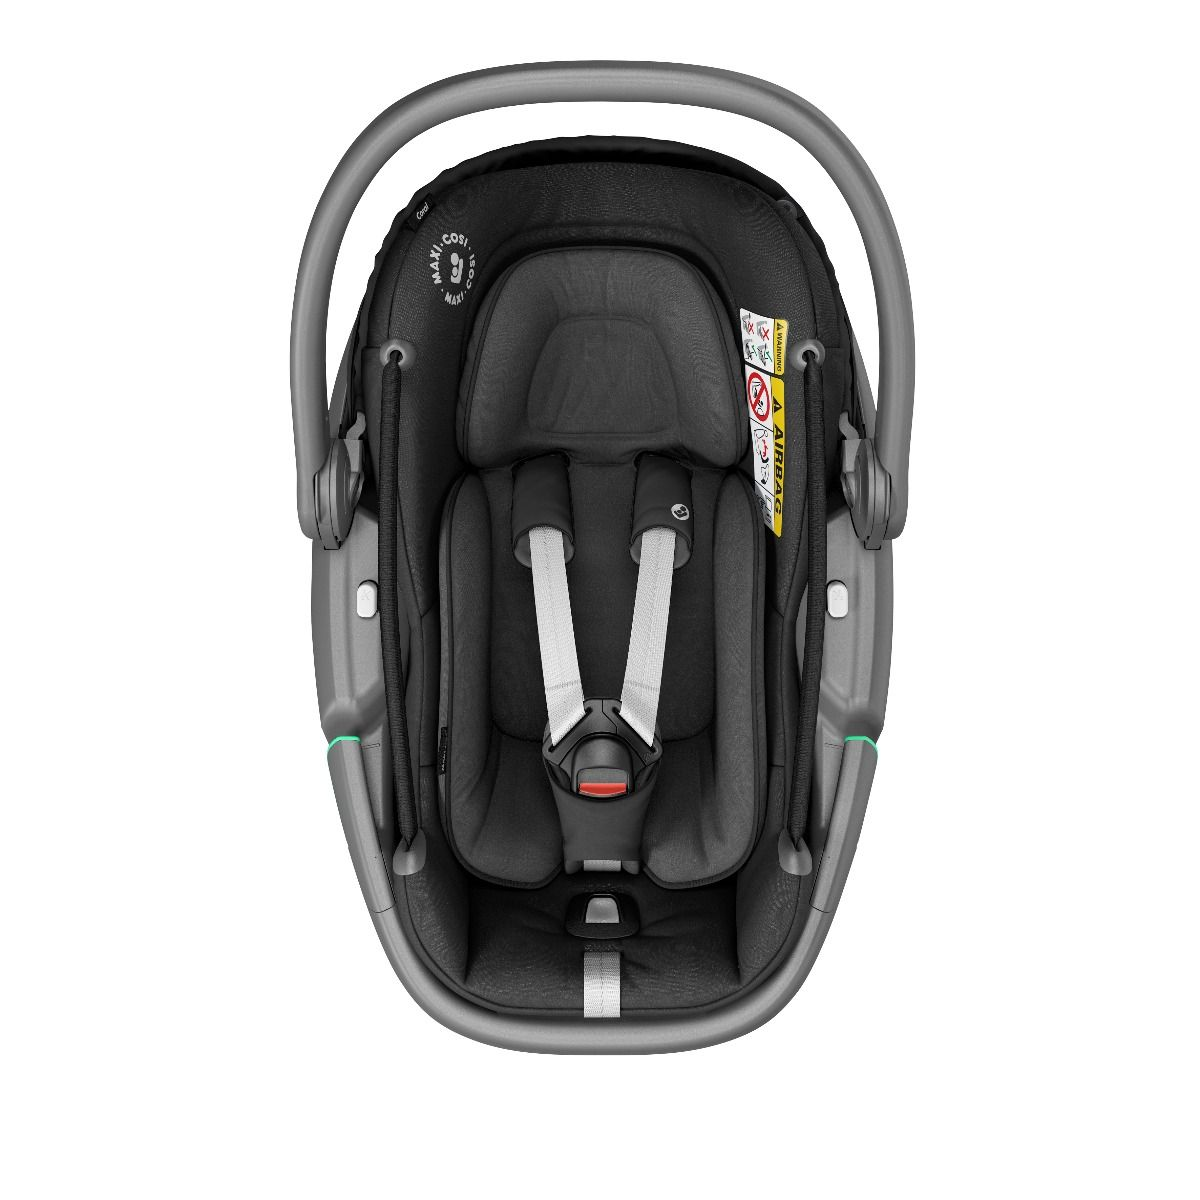 8557672110 2020 Maxicosi Carseat Babycarseat Coral Black Essentialblack Easyinharness Front